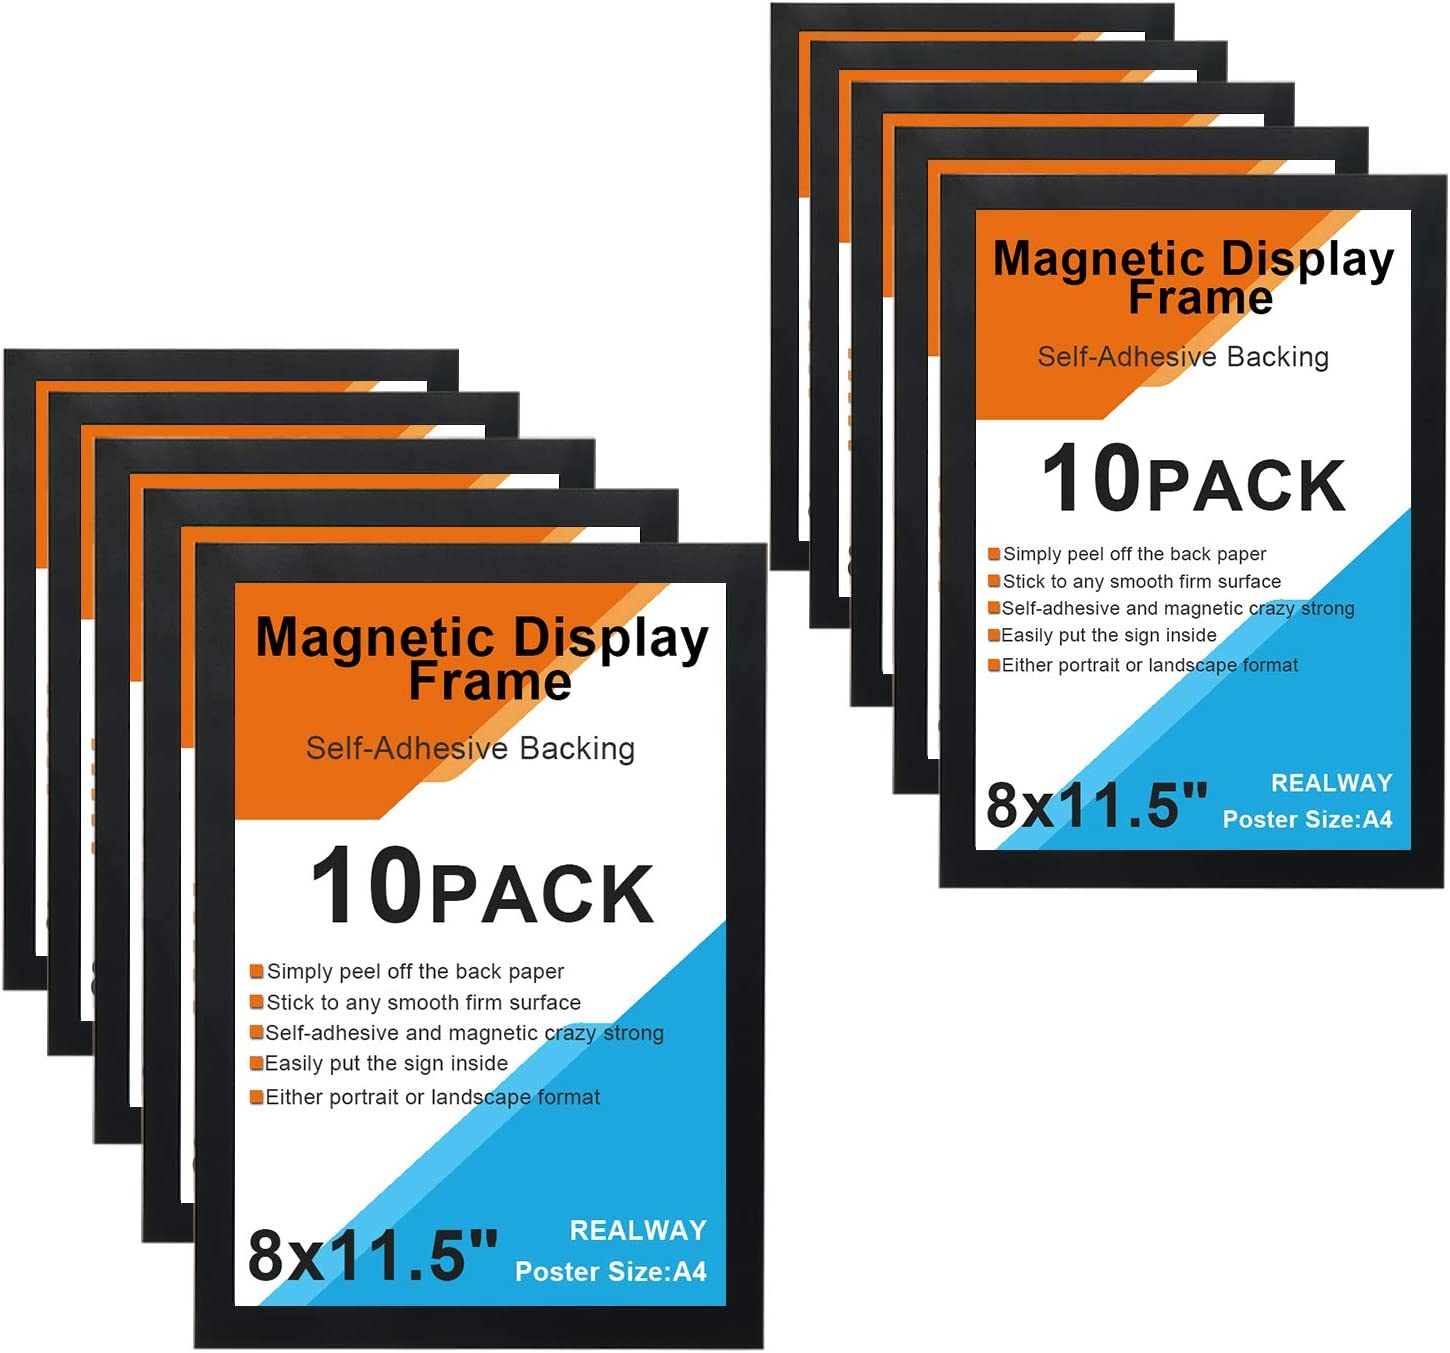 REALWAY 8X11.5 Self-Adhesive Magnetic Display Frame Magnetic Double Sided Window Sign Holder for Office//Door//Glass//Schedule//Refrigerator Display Frame Black, 6Pack